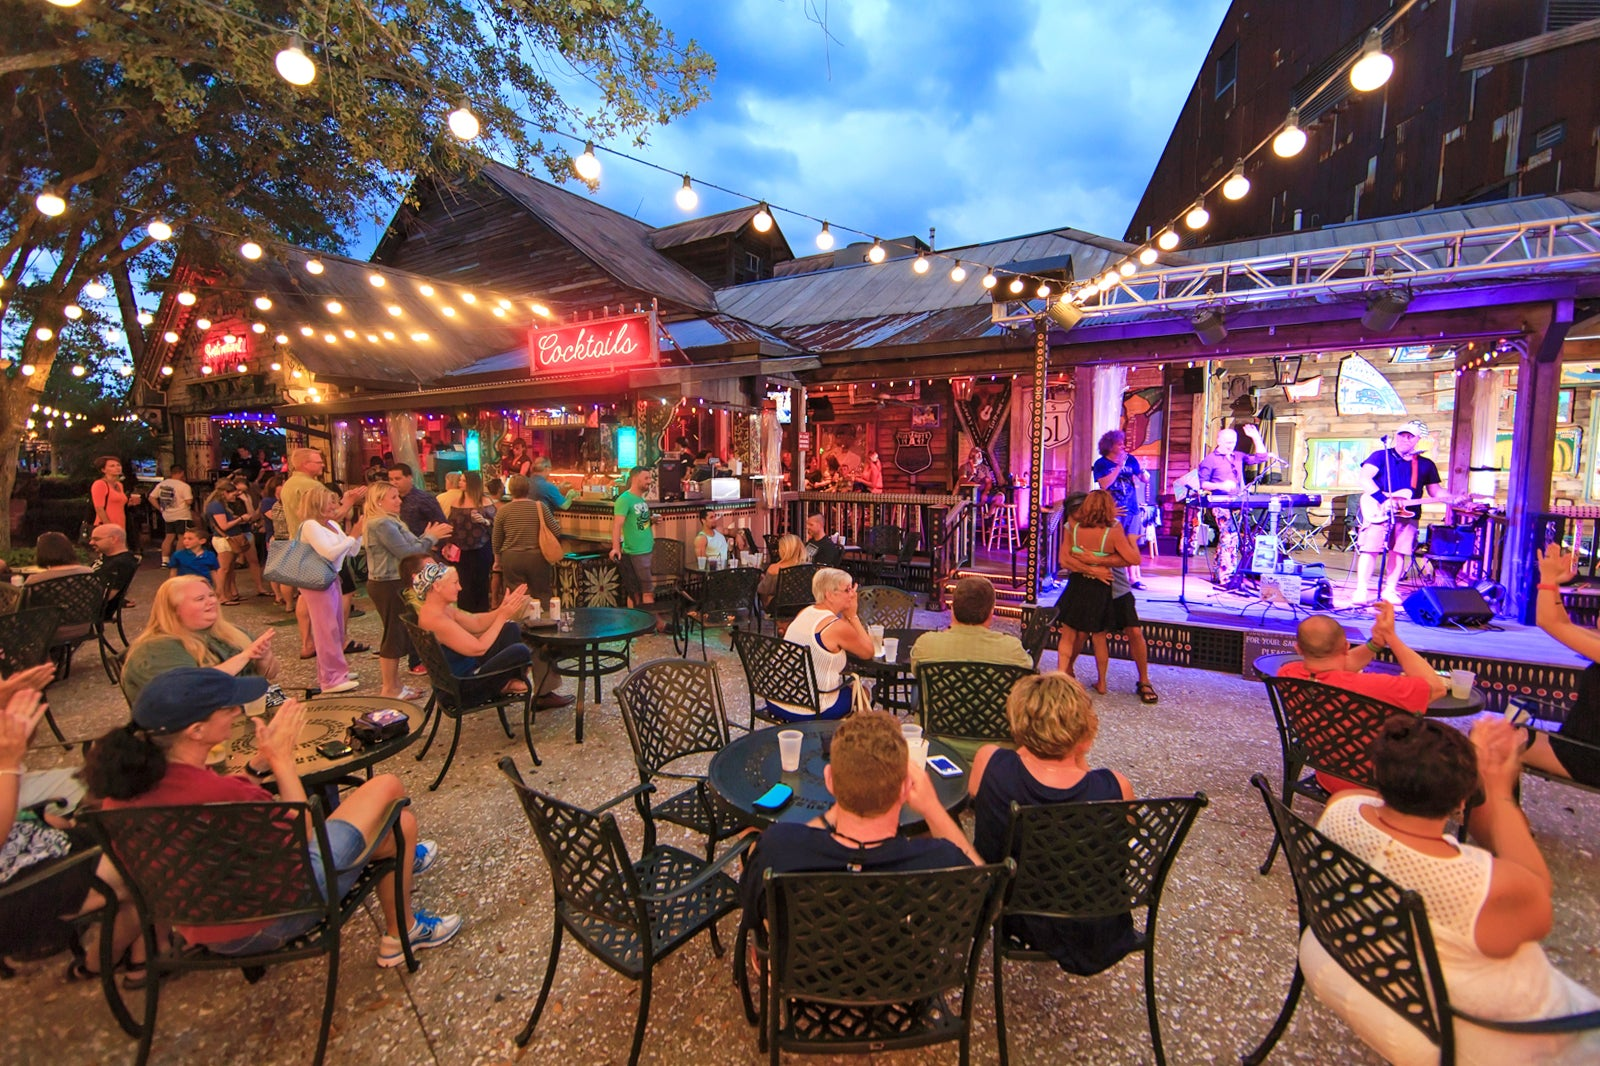 8 Best Nightlife in Orlando - What to Do at Night in Orlando